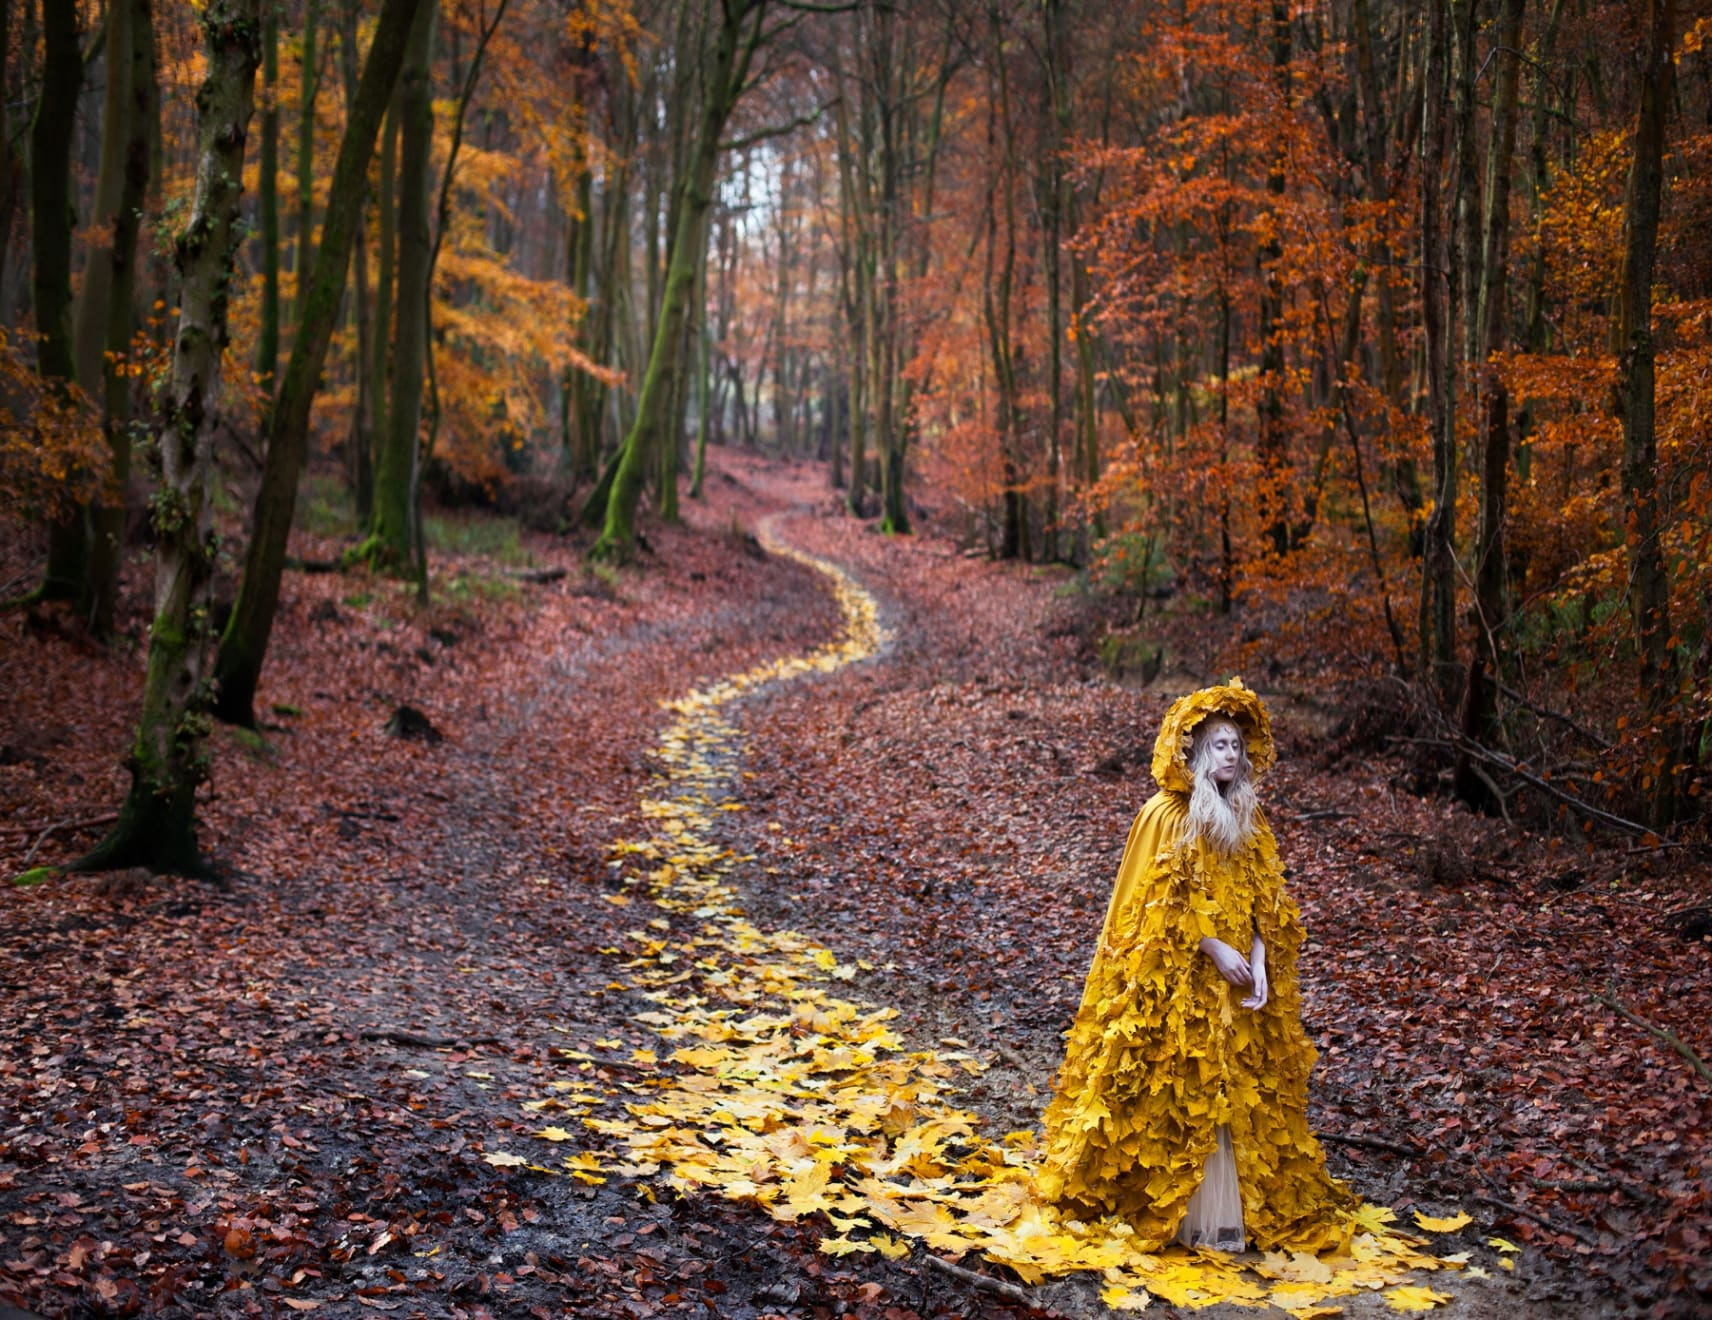 Kirsty Mitchell The Journey Home, 2013